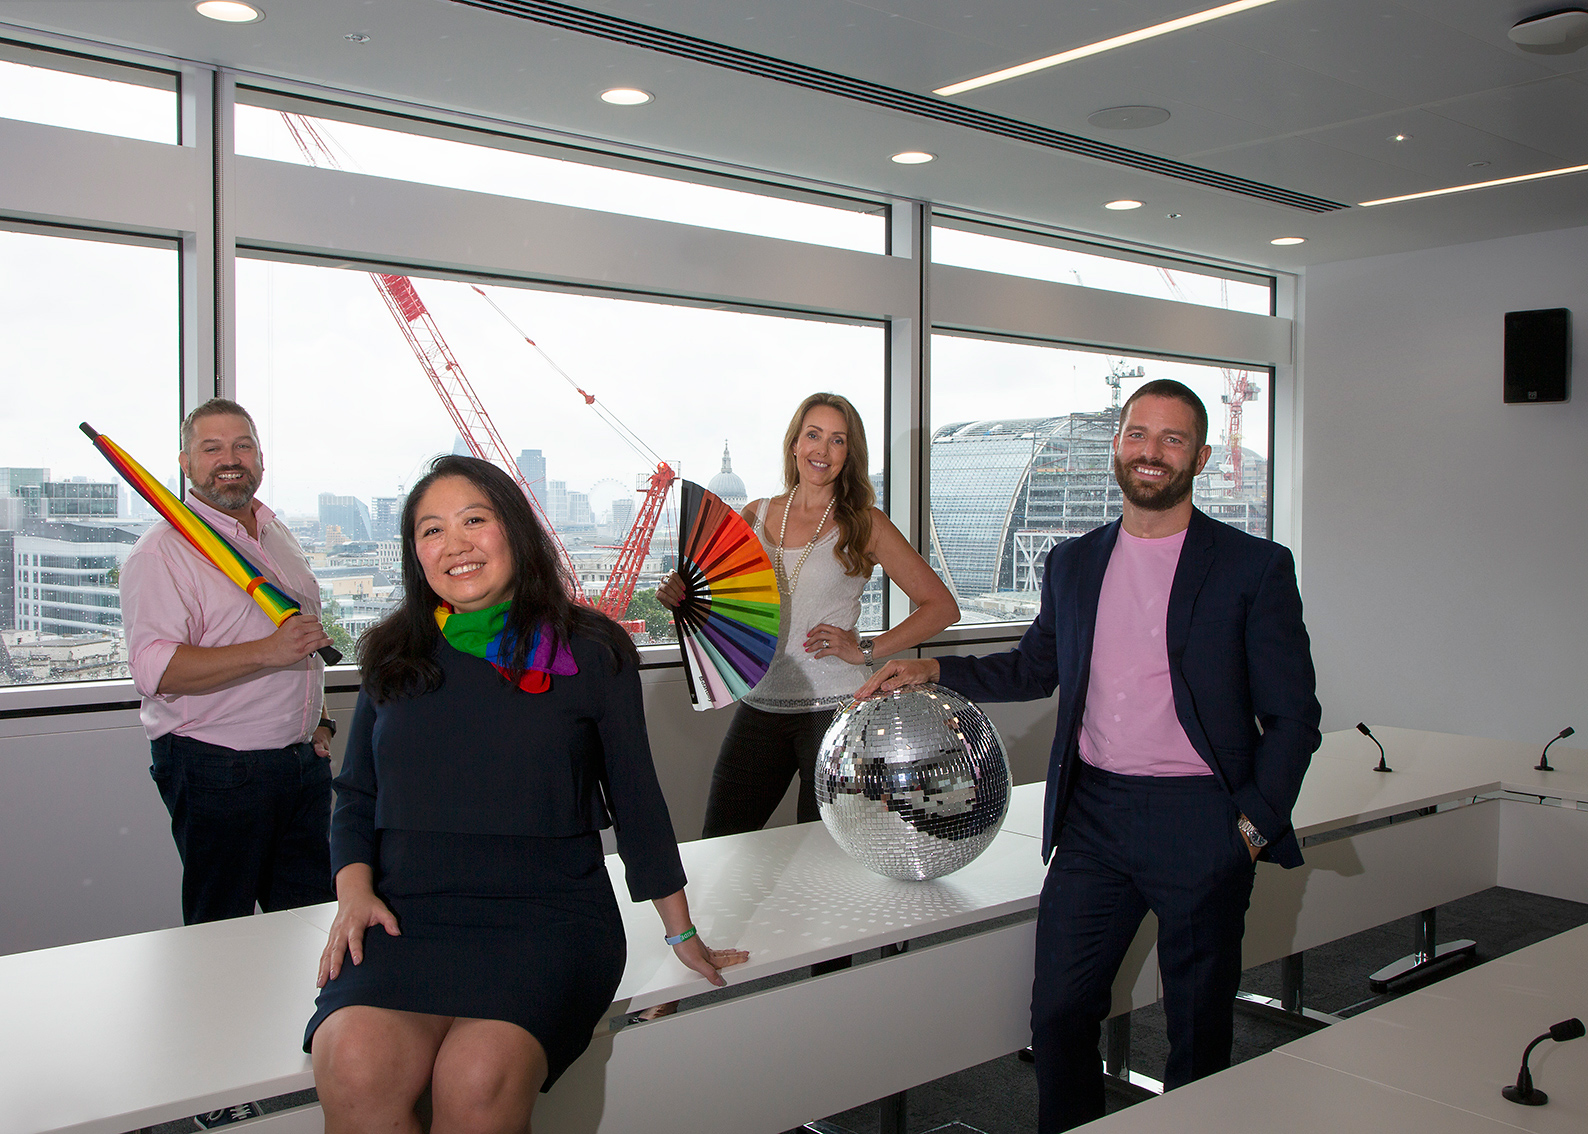 John Robarts - UK Head of Human Resources, UBS Group, Cicilia Wan - Global Head of Diversity, Equity & Inclusion, UBS Group, Lyssa Barber, Pierre-Antoine Fourny - UBS Pride UK